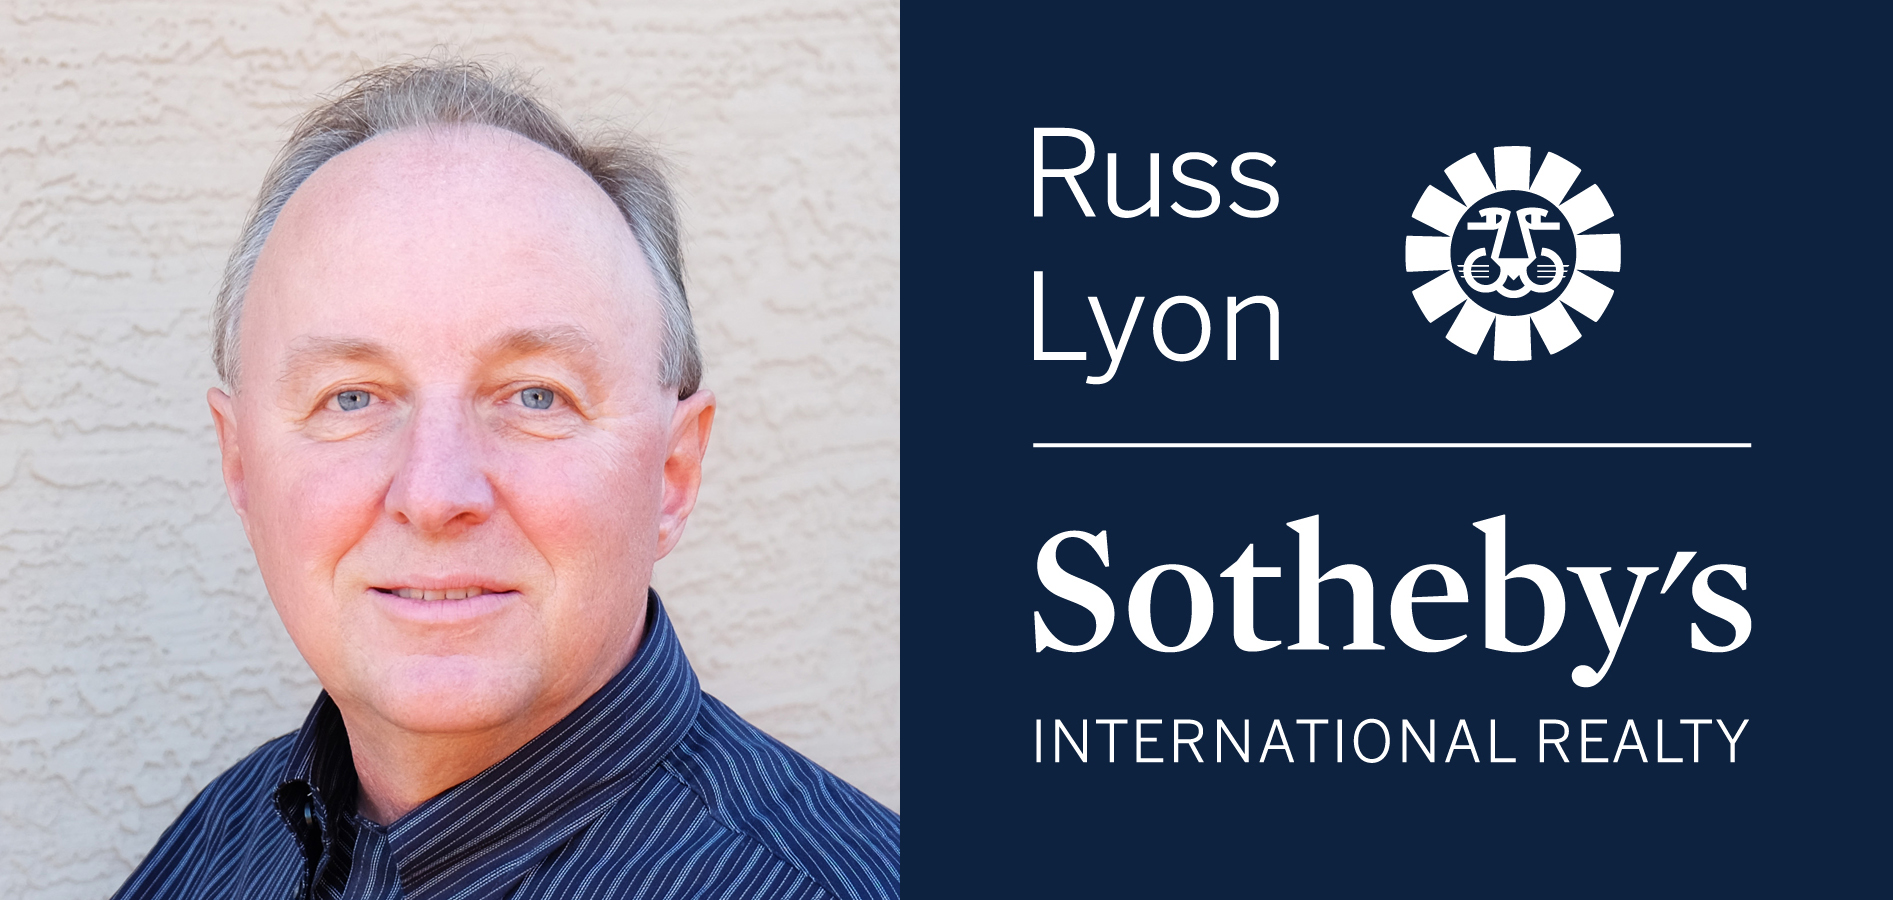 Ron Weiss - (602) 469-3078 CRS and GRI Certifications Russ Lyon Sotheby's